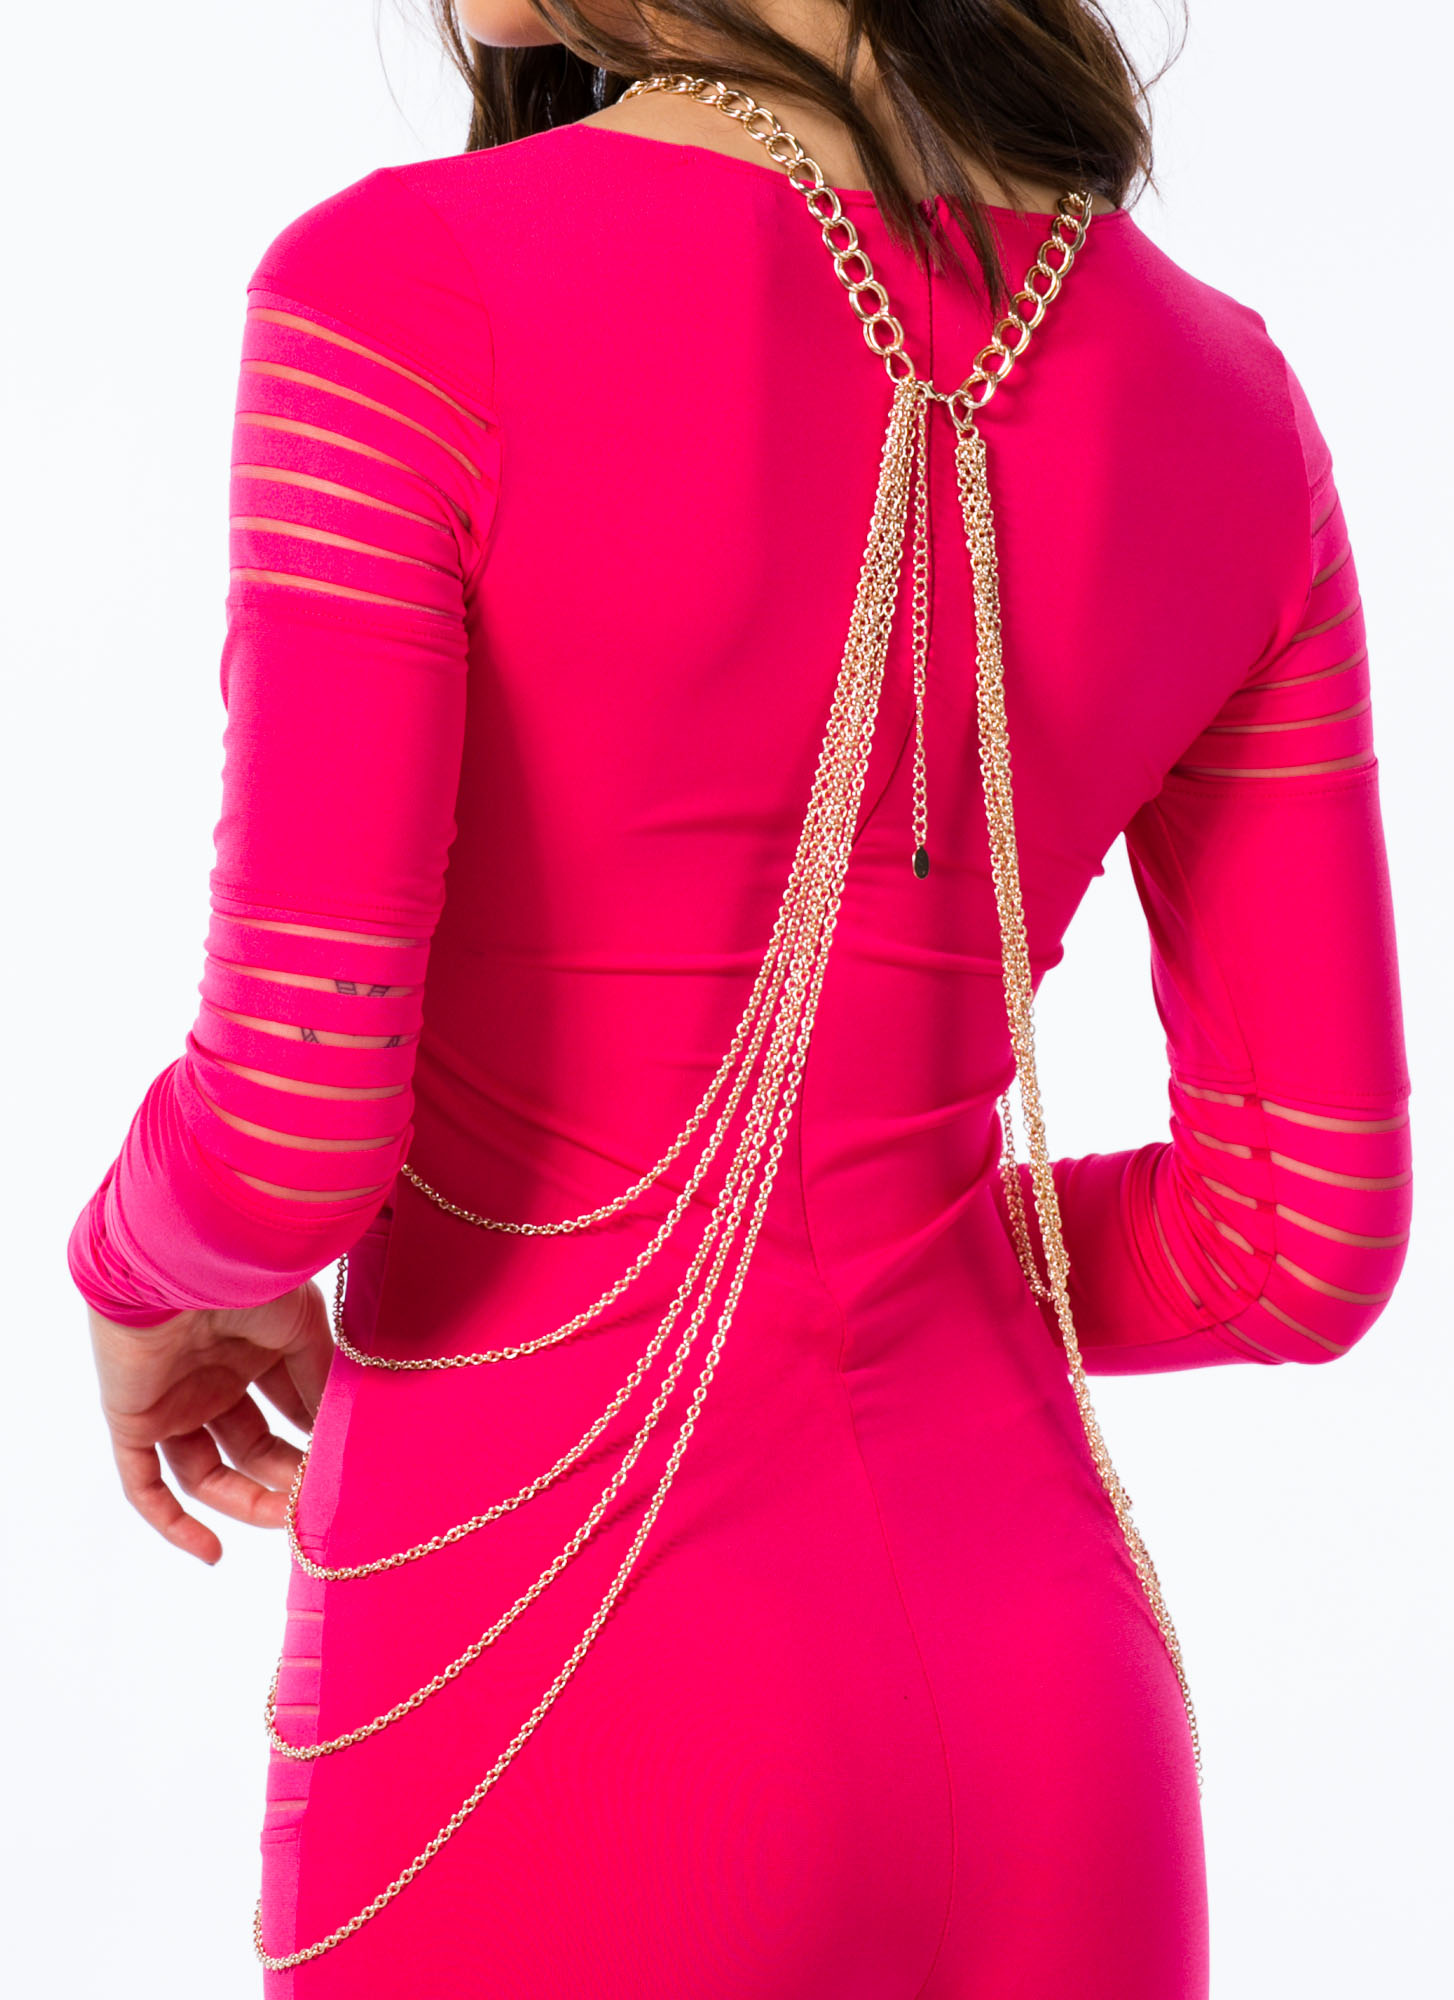 Double Link Draped Body Chain GOLD